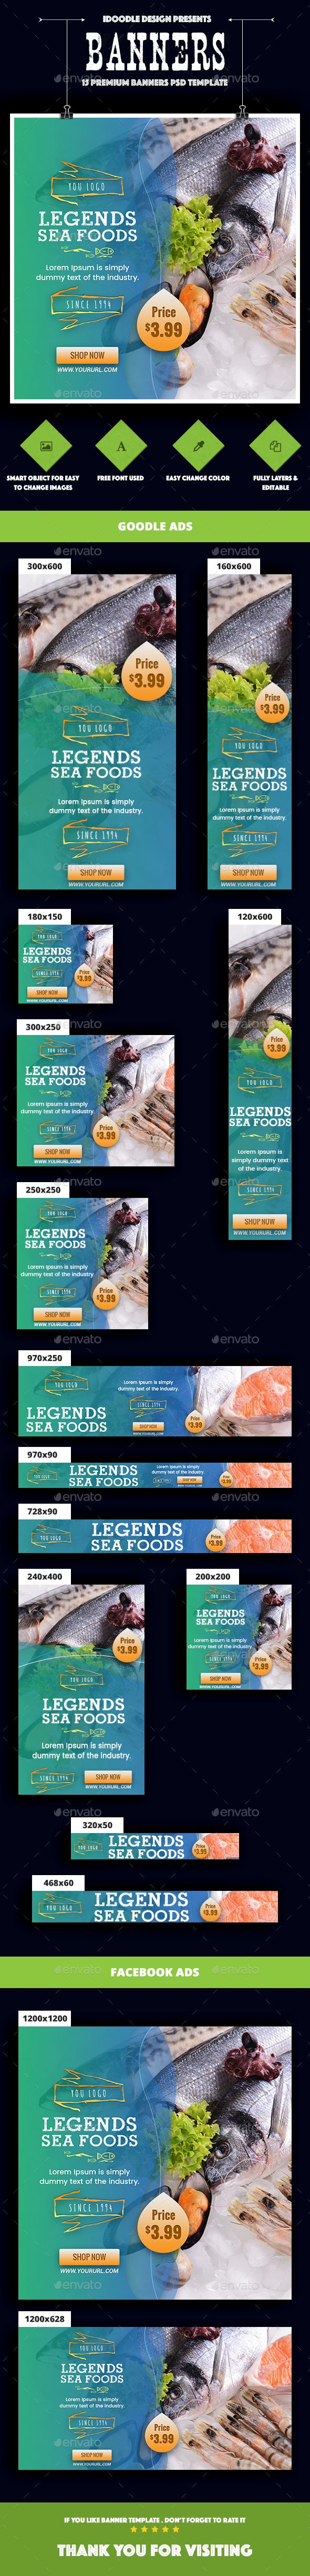 SeaFood Store, Fresh Food Banners Ad — Photoshop PSD #natural food #adwords banners • Available here → https://graphicriver.net/item/seafood-store-fresh-food-banners-ad/20203430?ref=pxcr